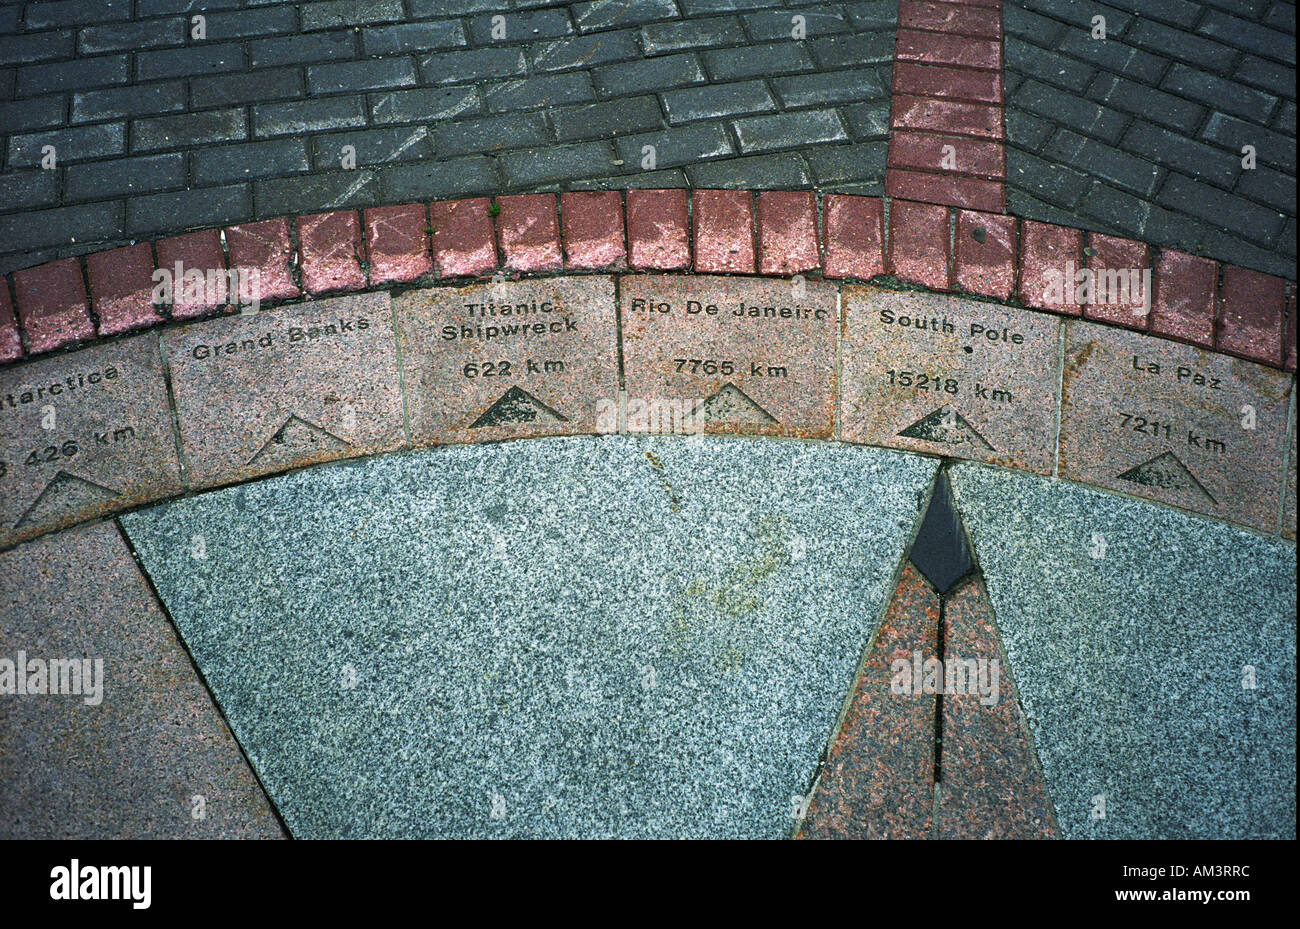 St Johns Newfoundland, Canada. Compass pointing to south Pole and wreck of the SS Titanic. - Stock Image